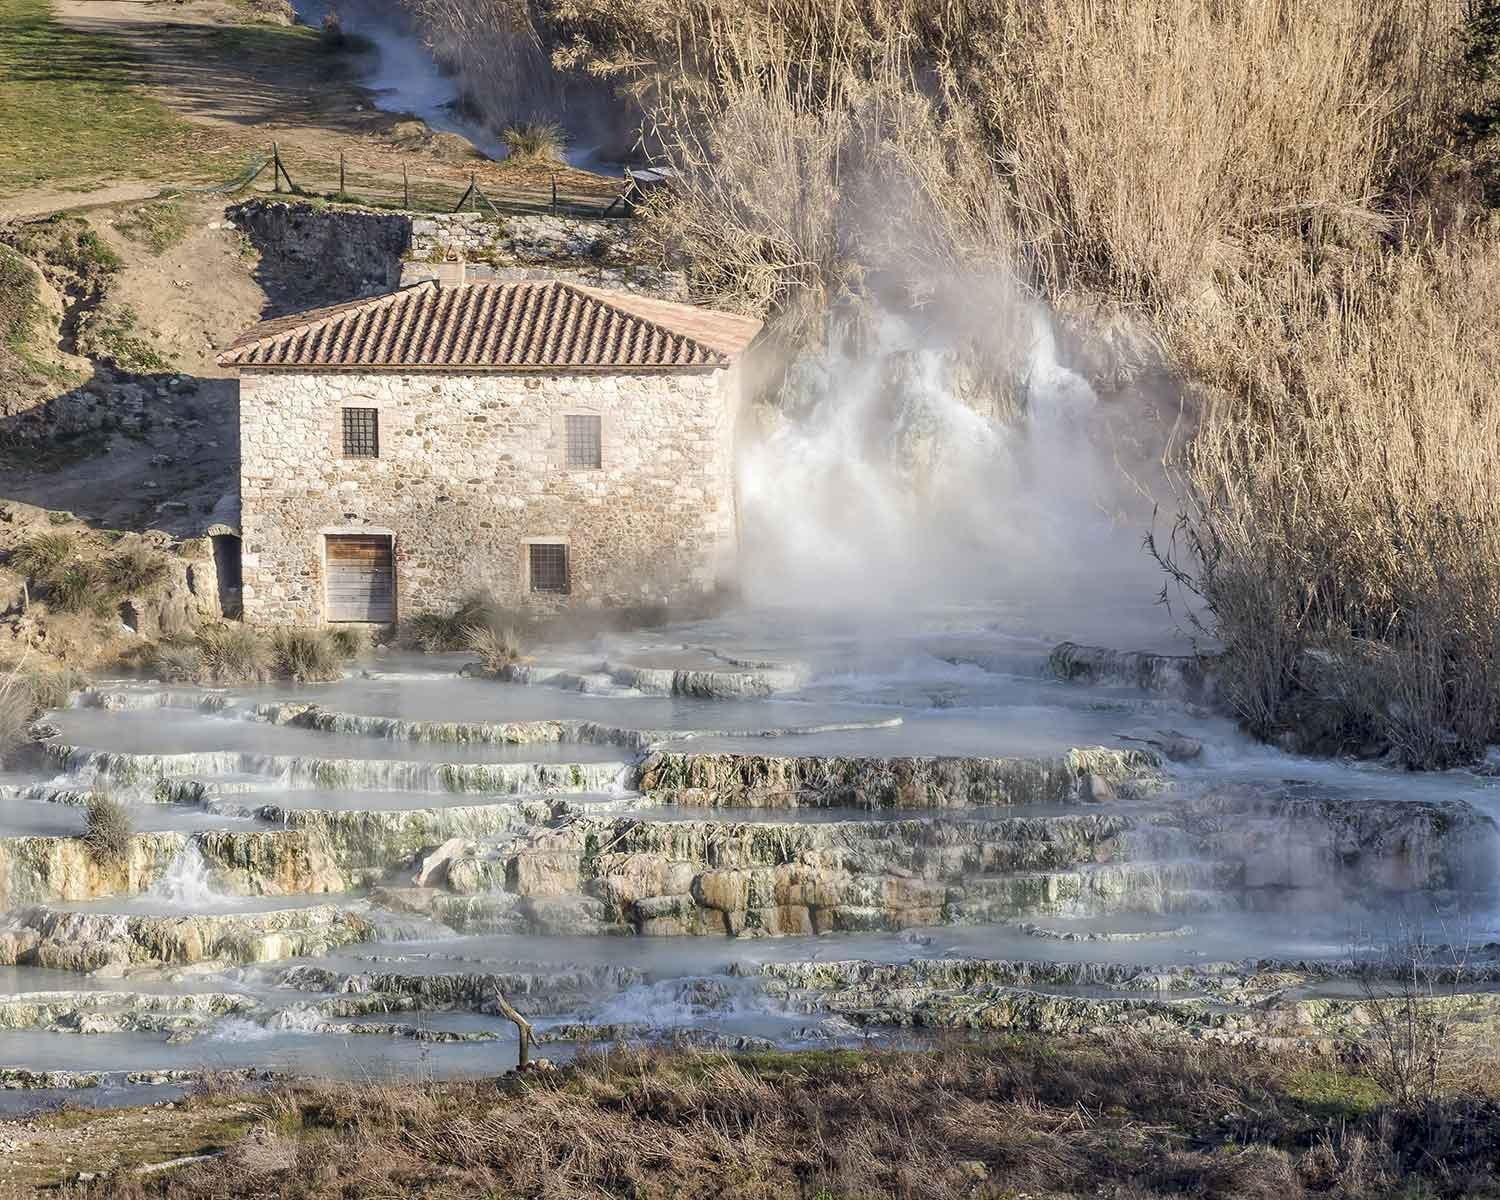 Toscana's Natural Thermal Spas